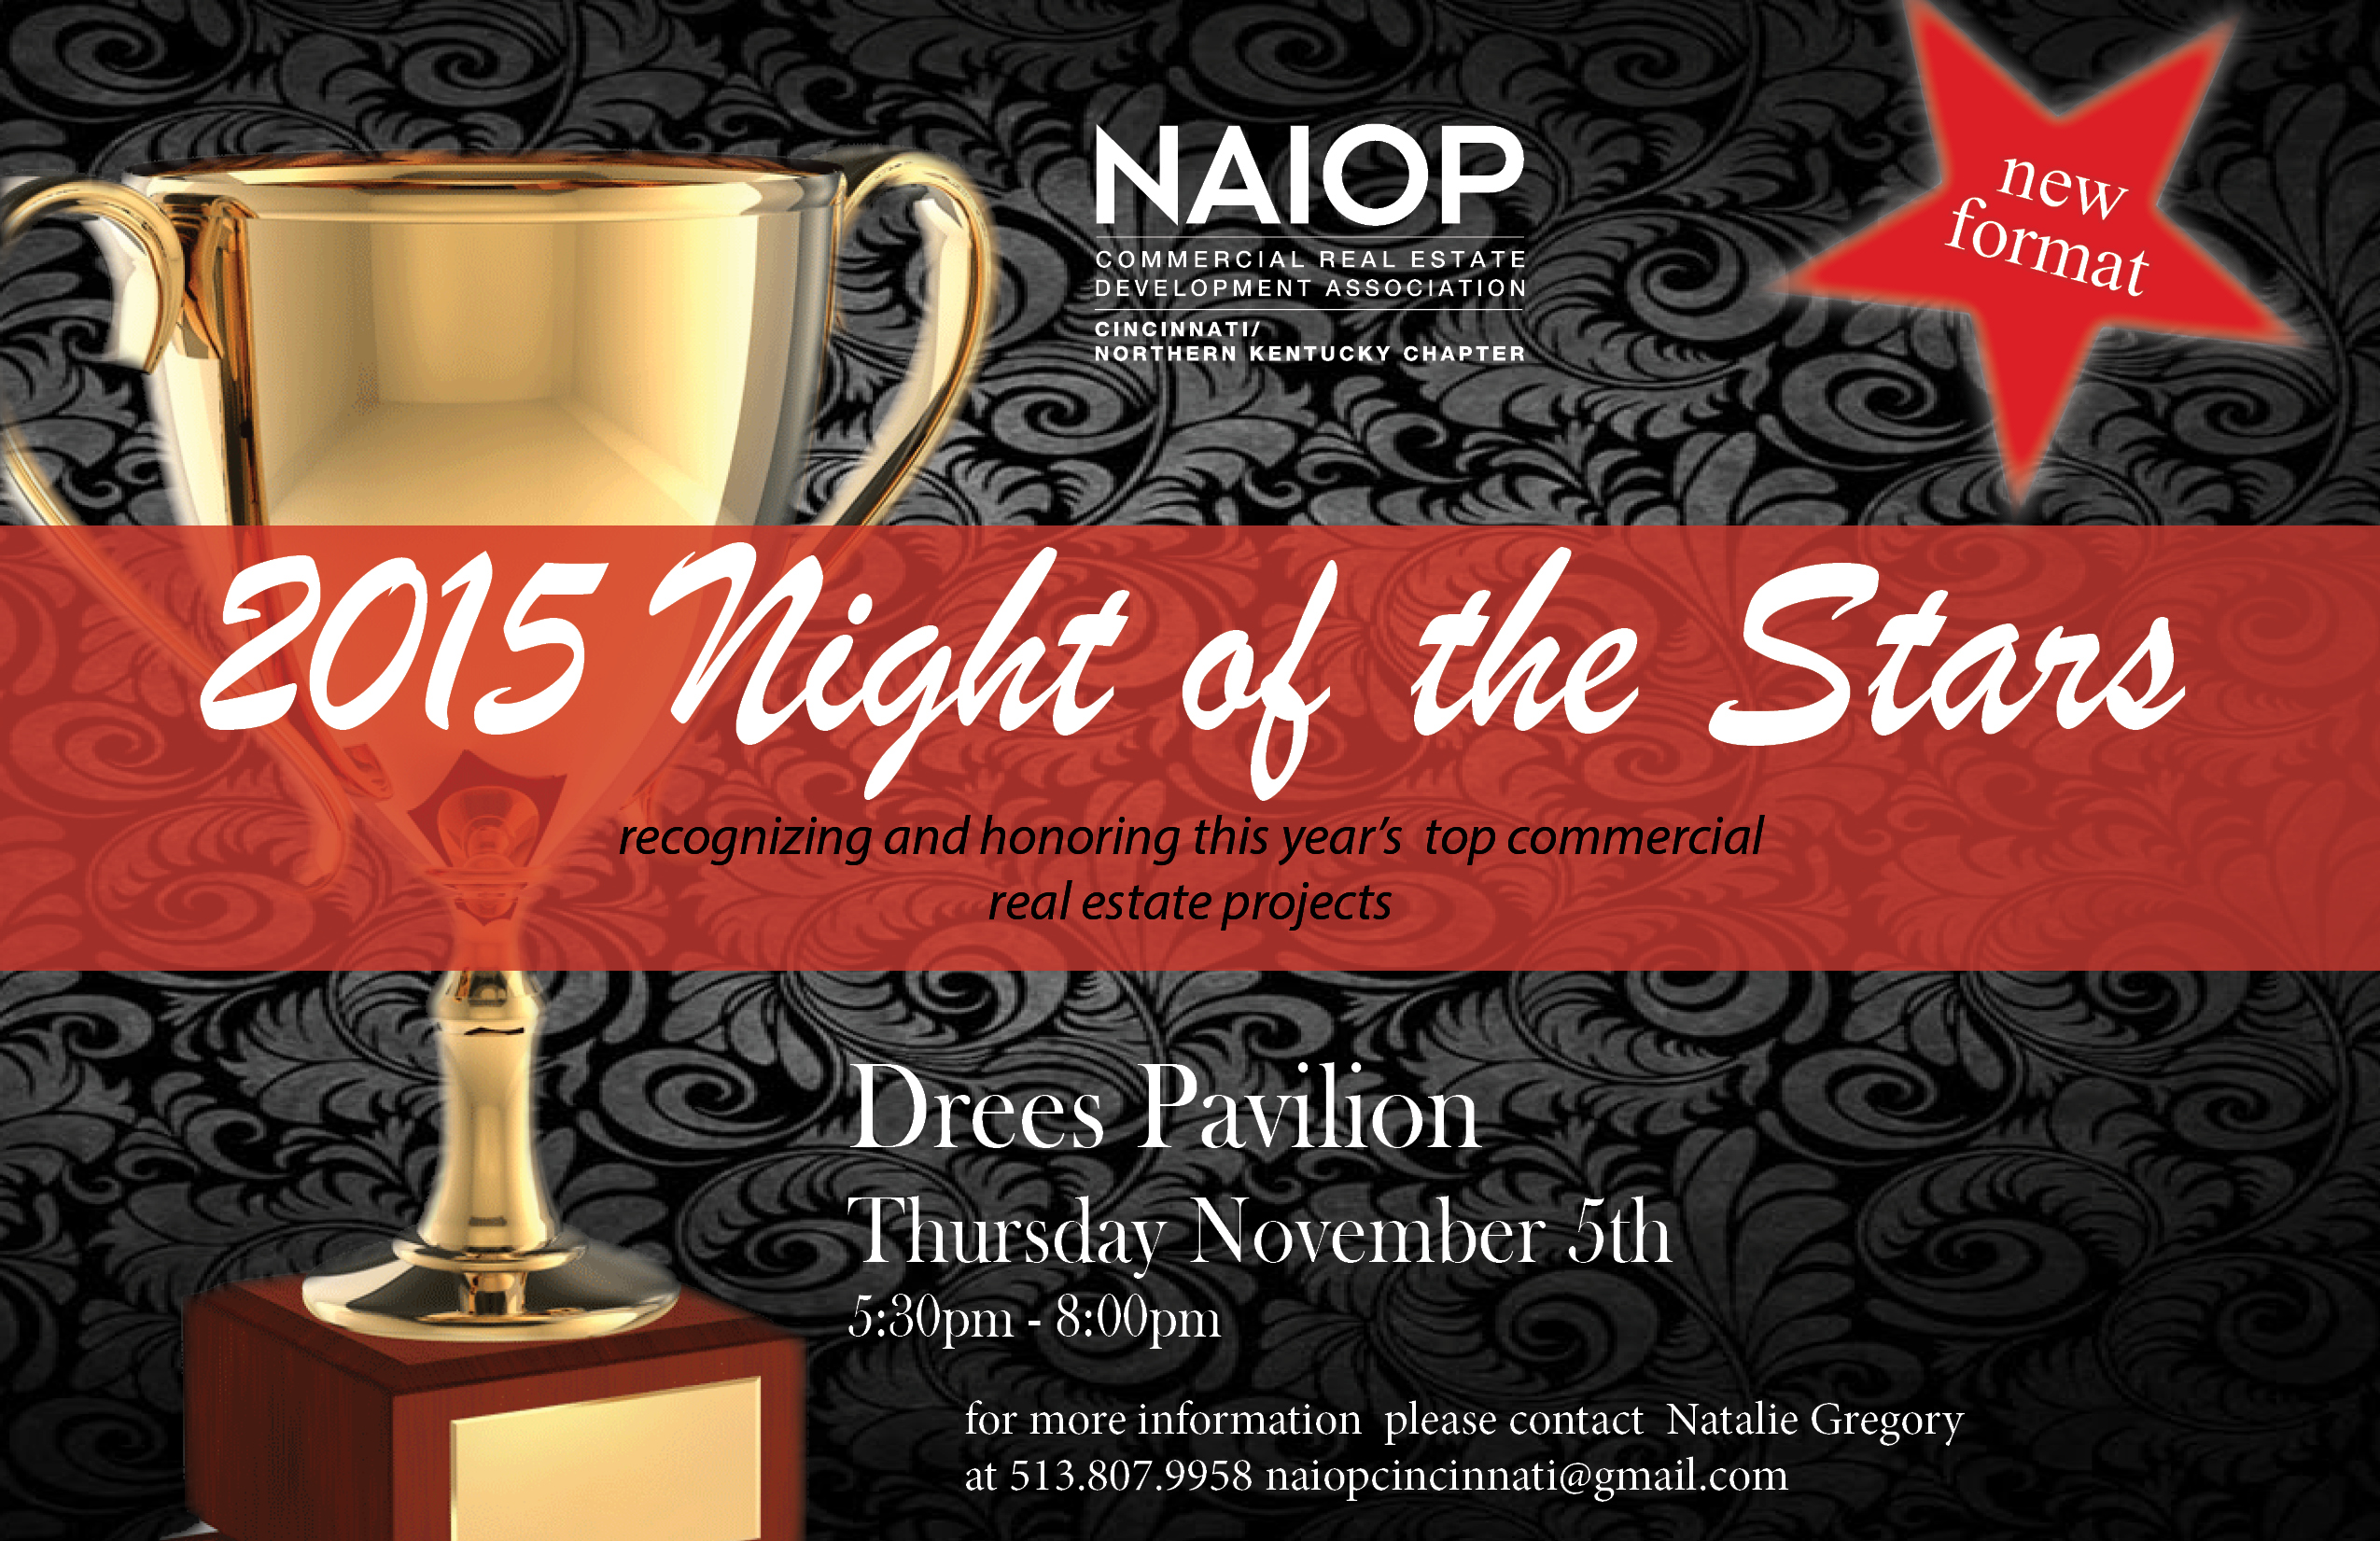 Annual Night of the Stars Gala November 5th